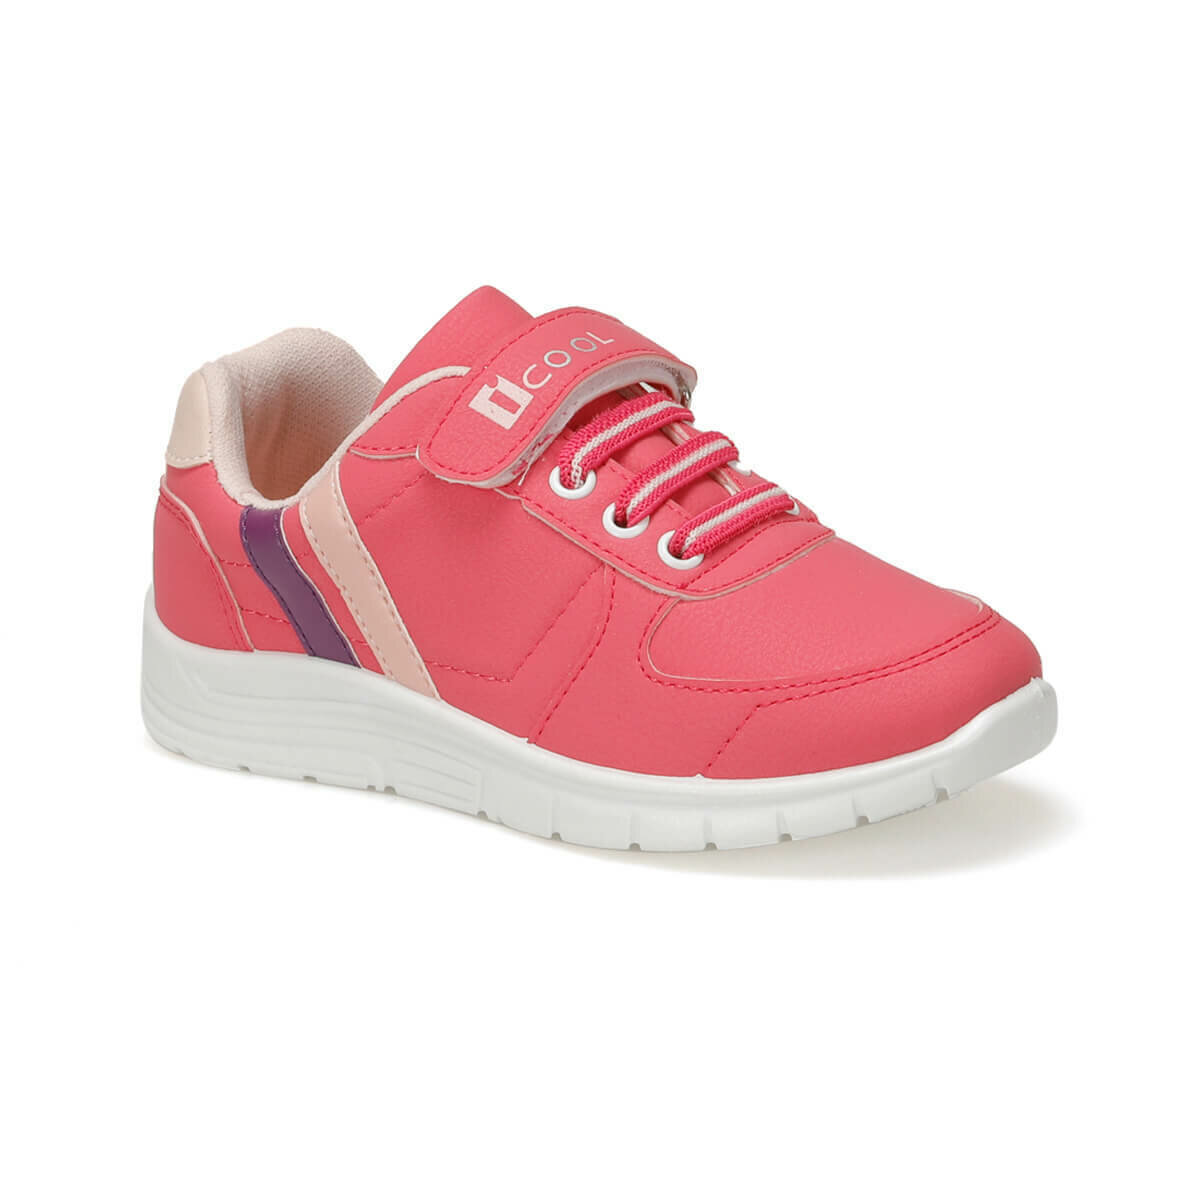 FLO DEMBA Y Fuchsia Female Child Sneaker Shoes I-Cool